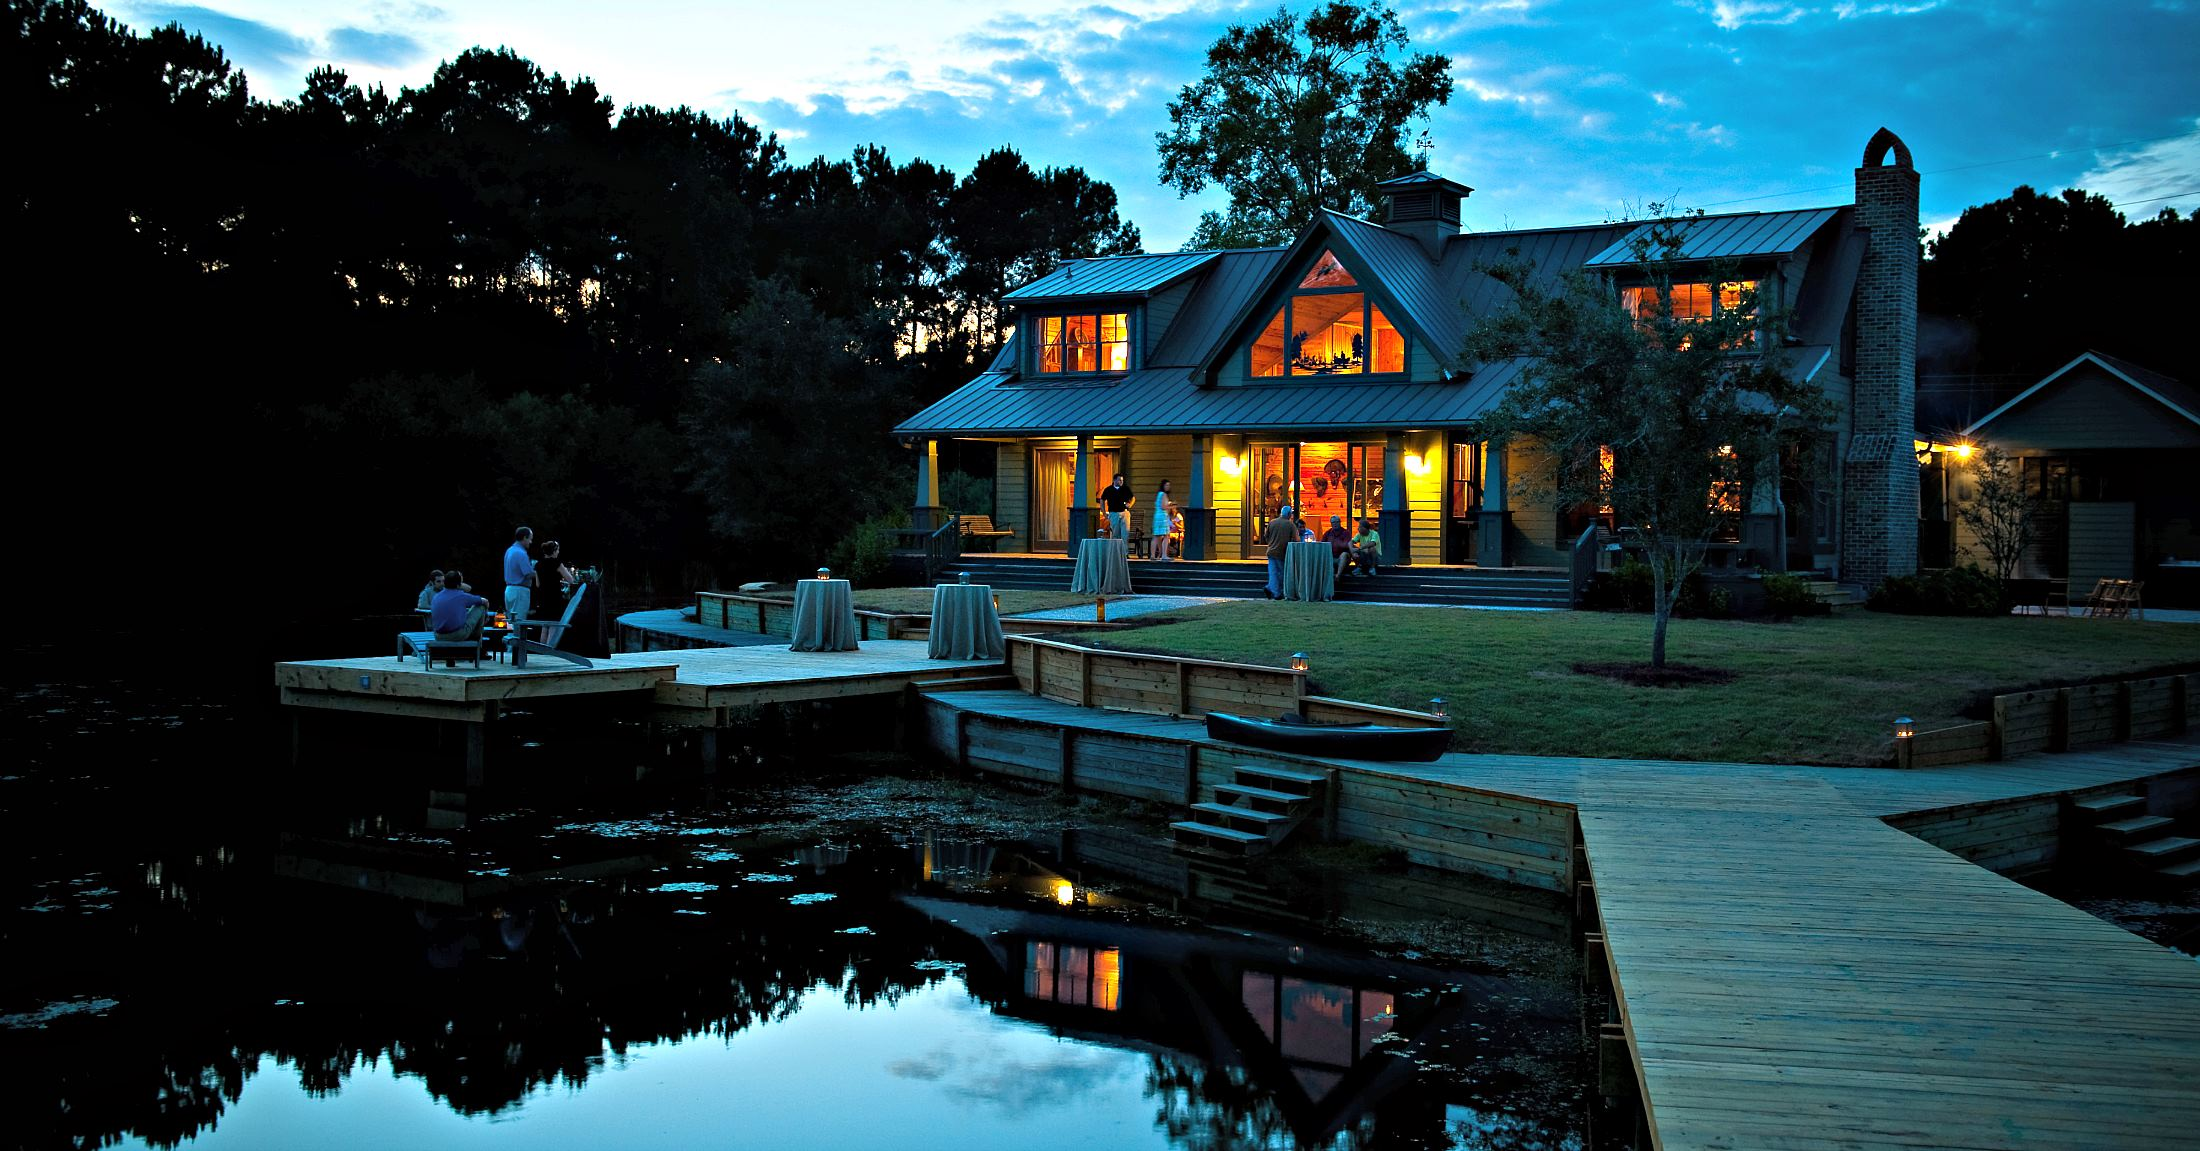 The Lake House at Bulow - 3